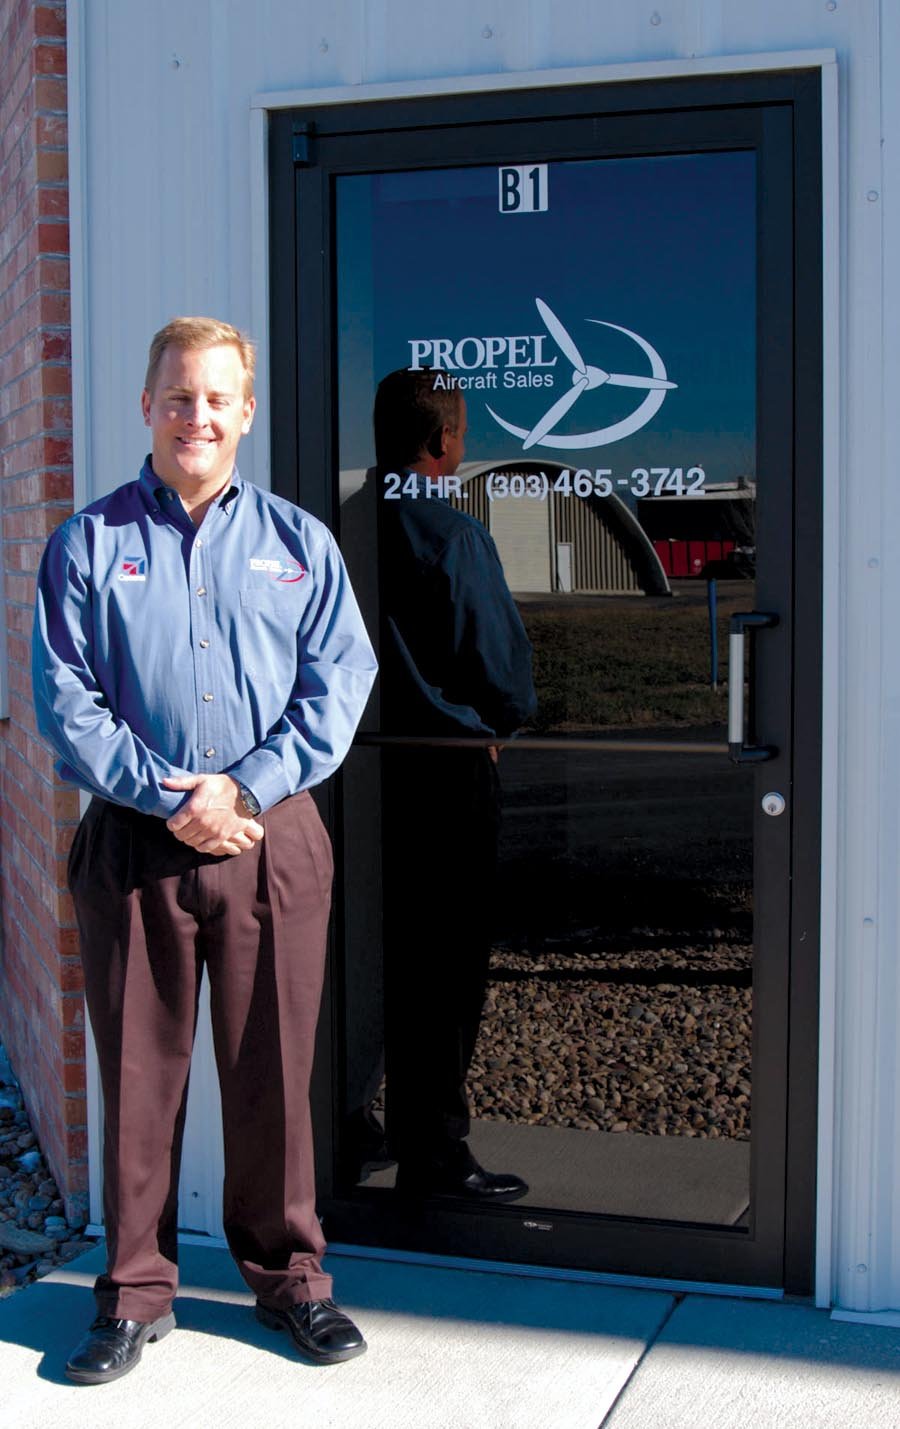 Propel Aircraft Sales, Inc.